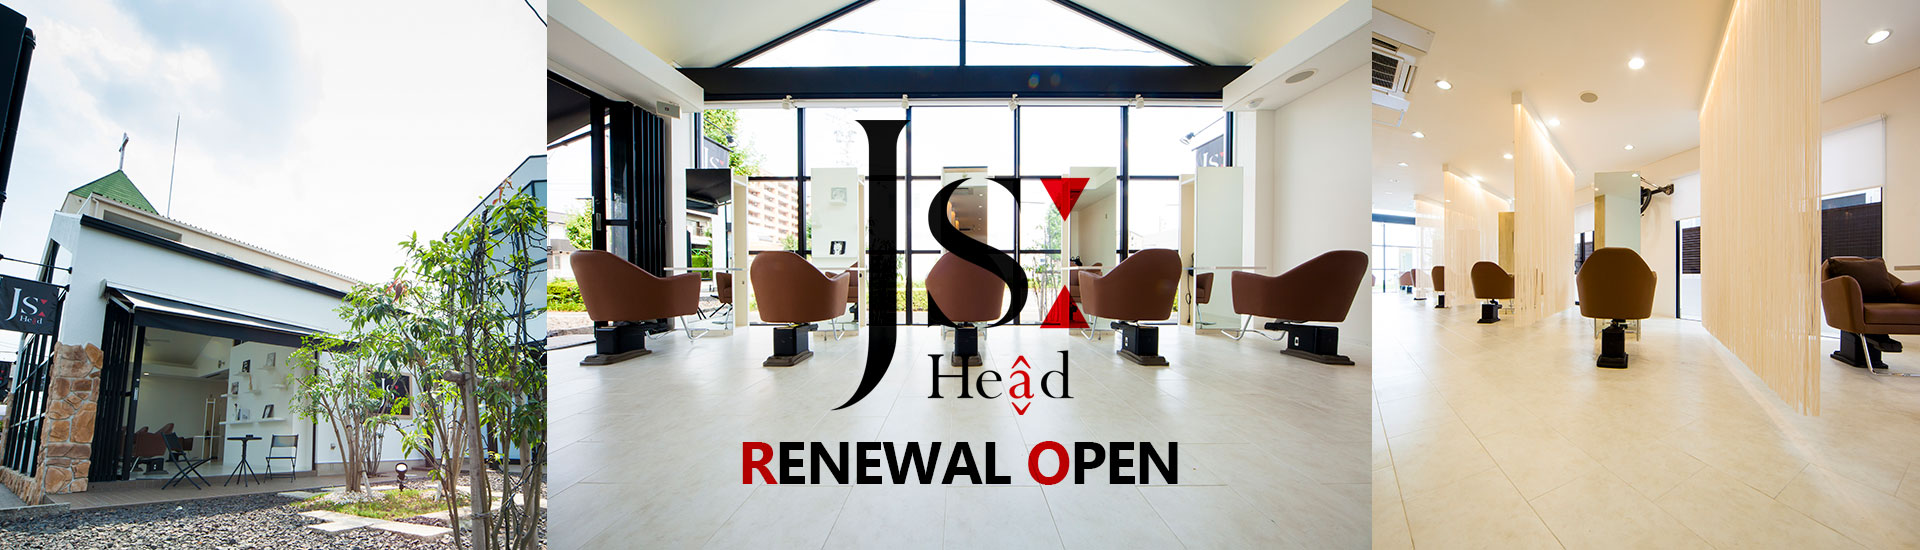 HEAD RENEWAL OPEN